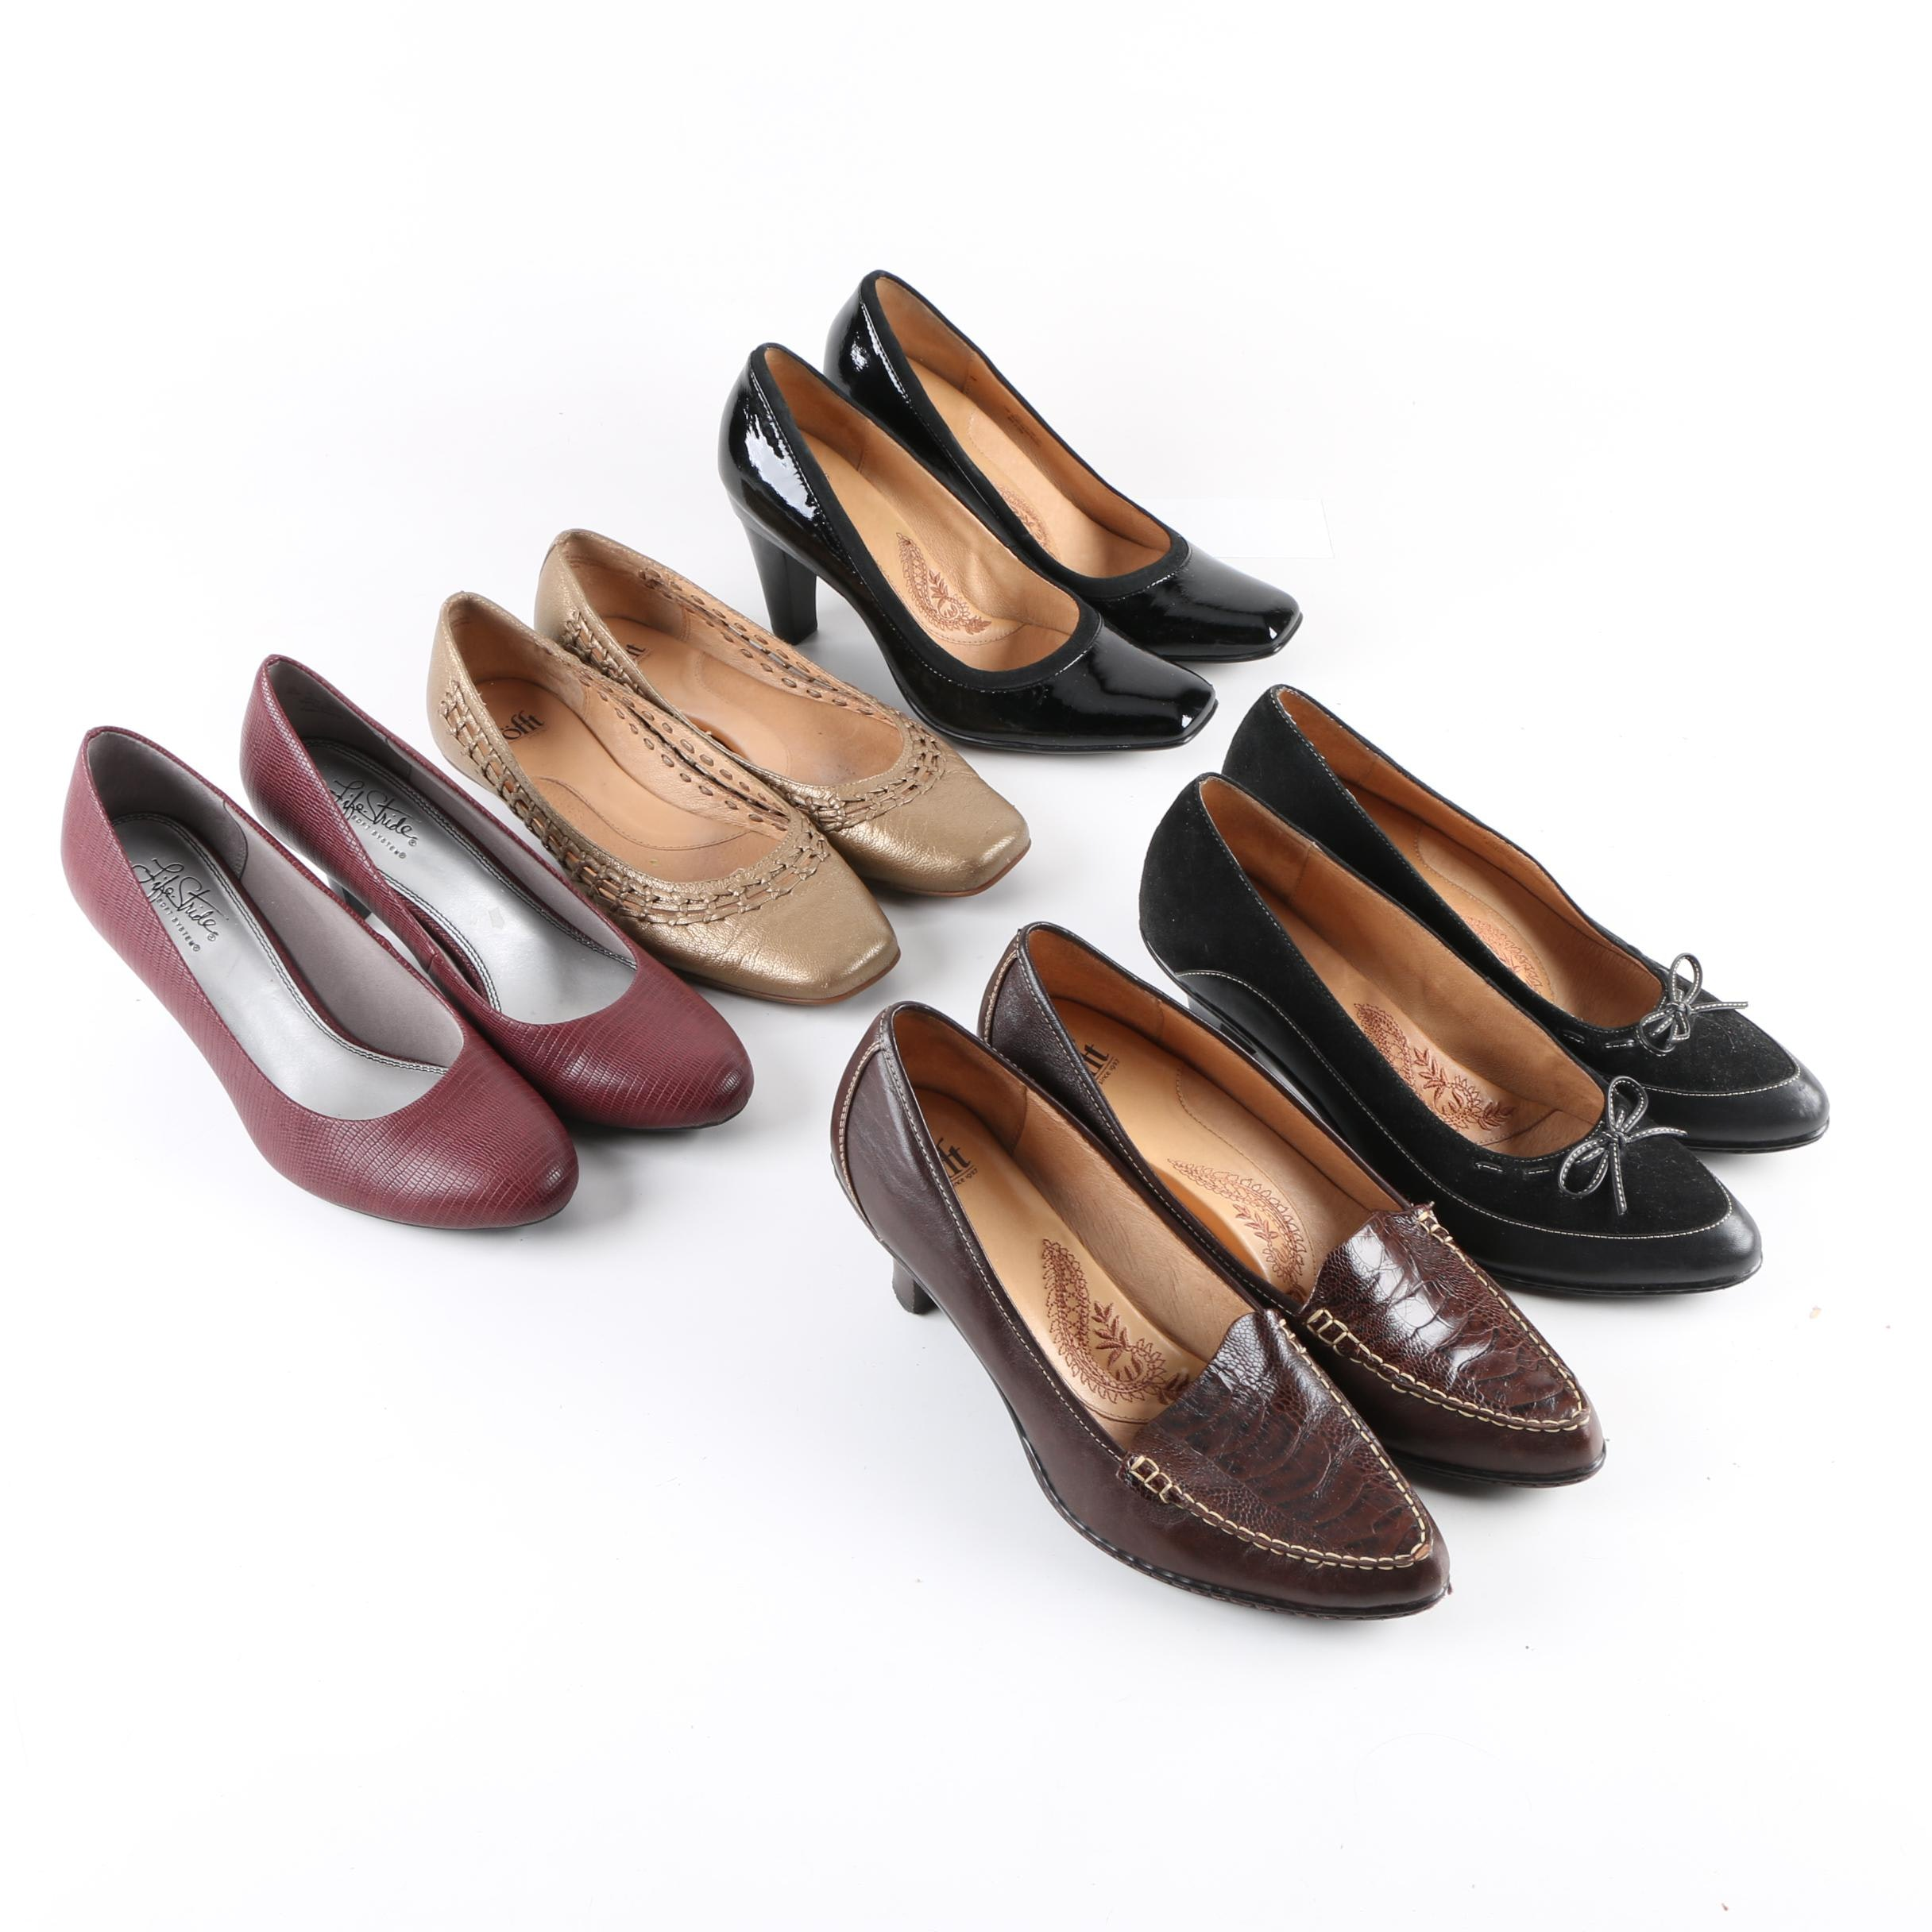 Women's Pumps and Flats Including Söfft and Life Stride